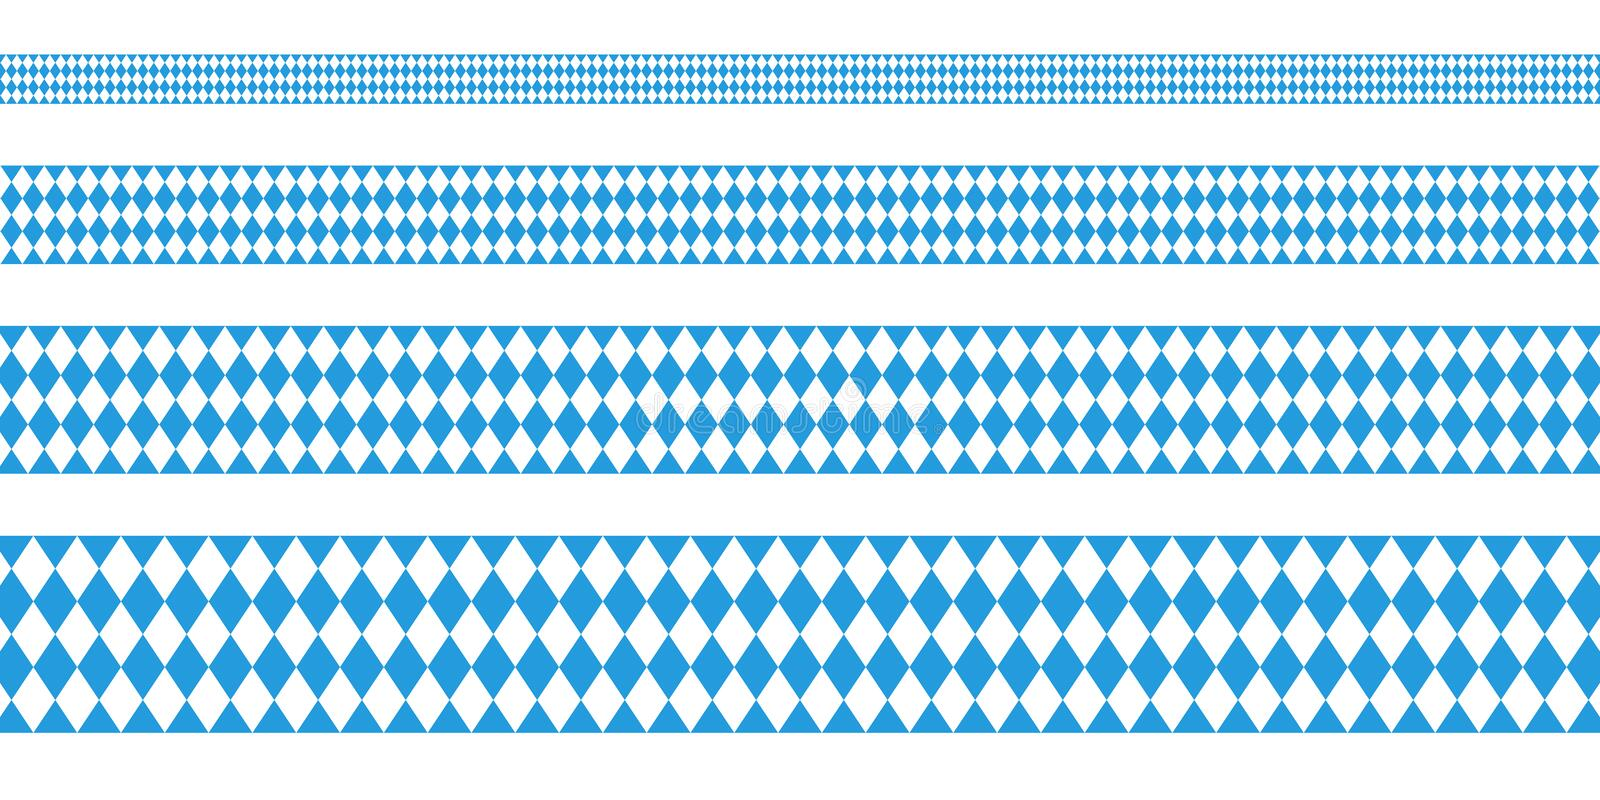 Cuatro bandera Oktoberfest Diamond Pattern recto libre illustration